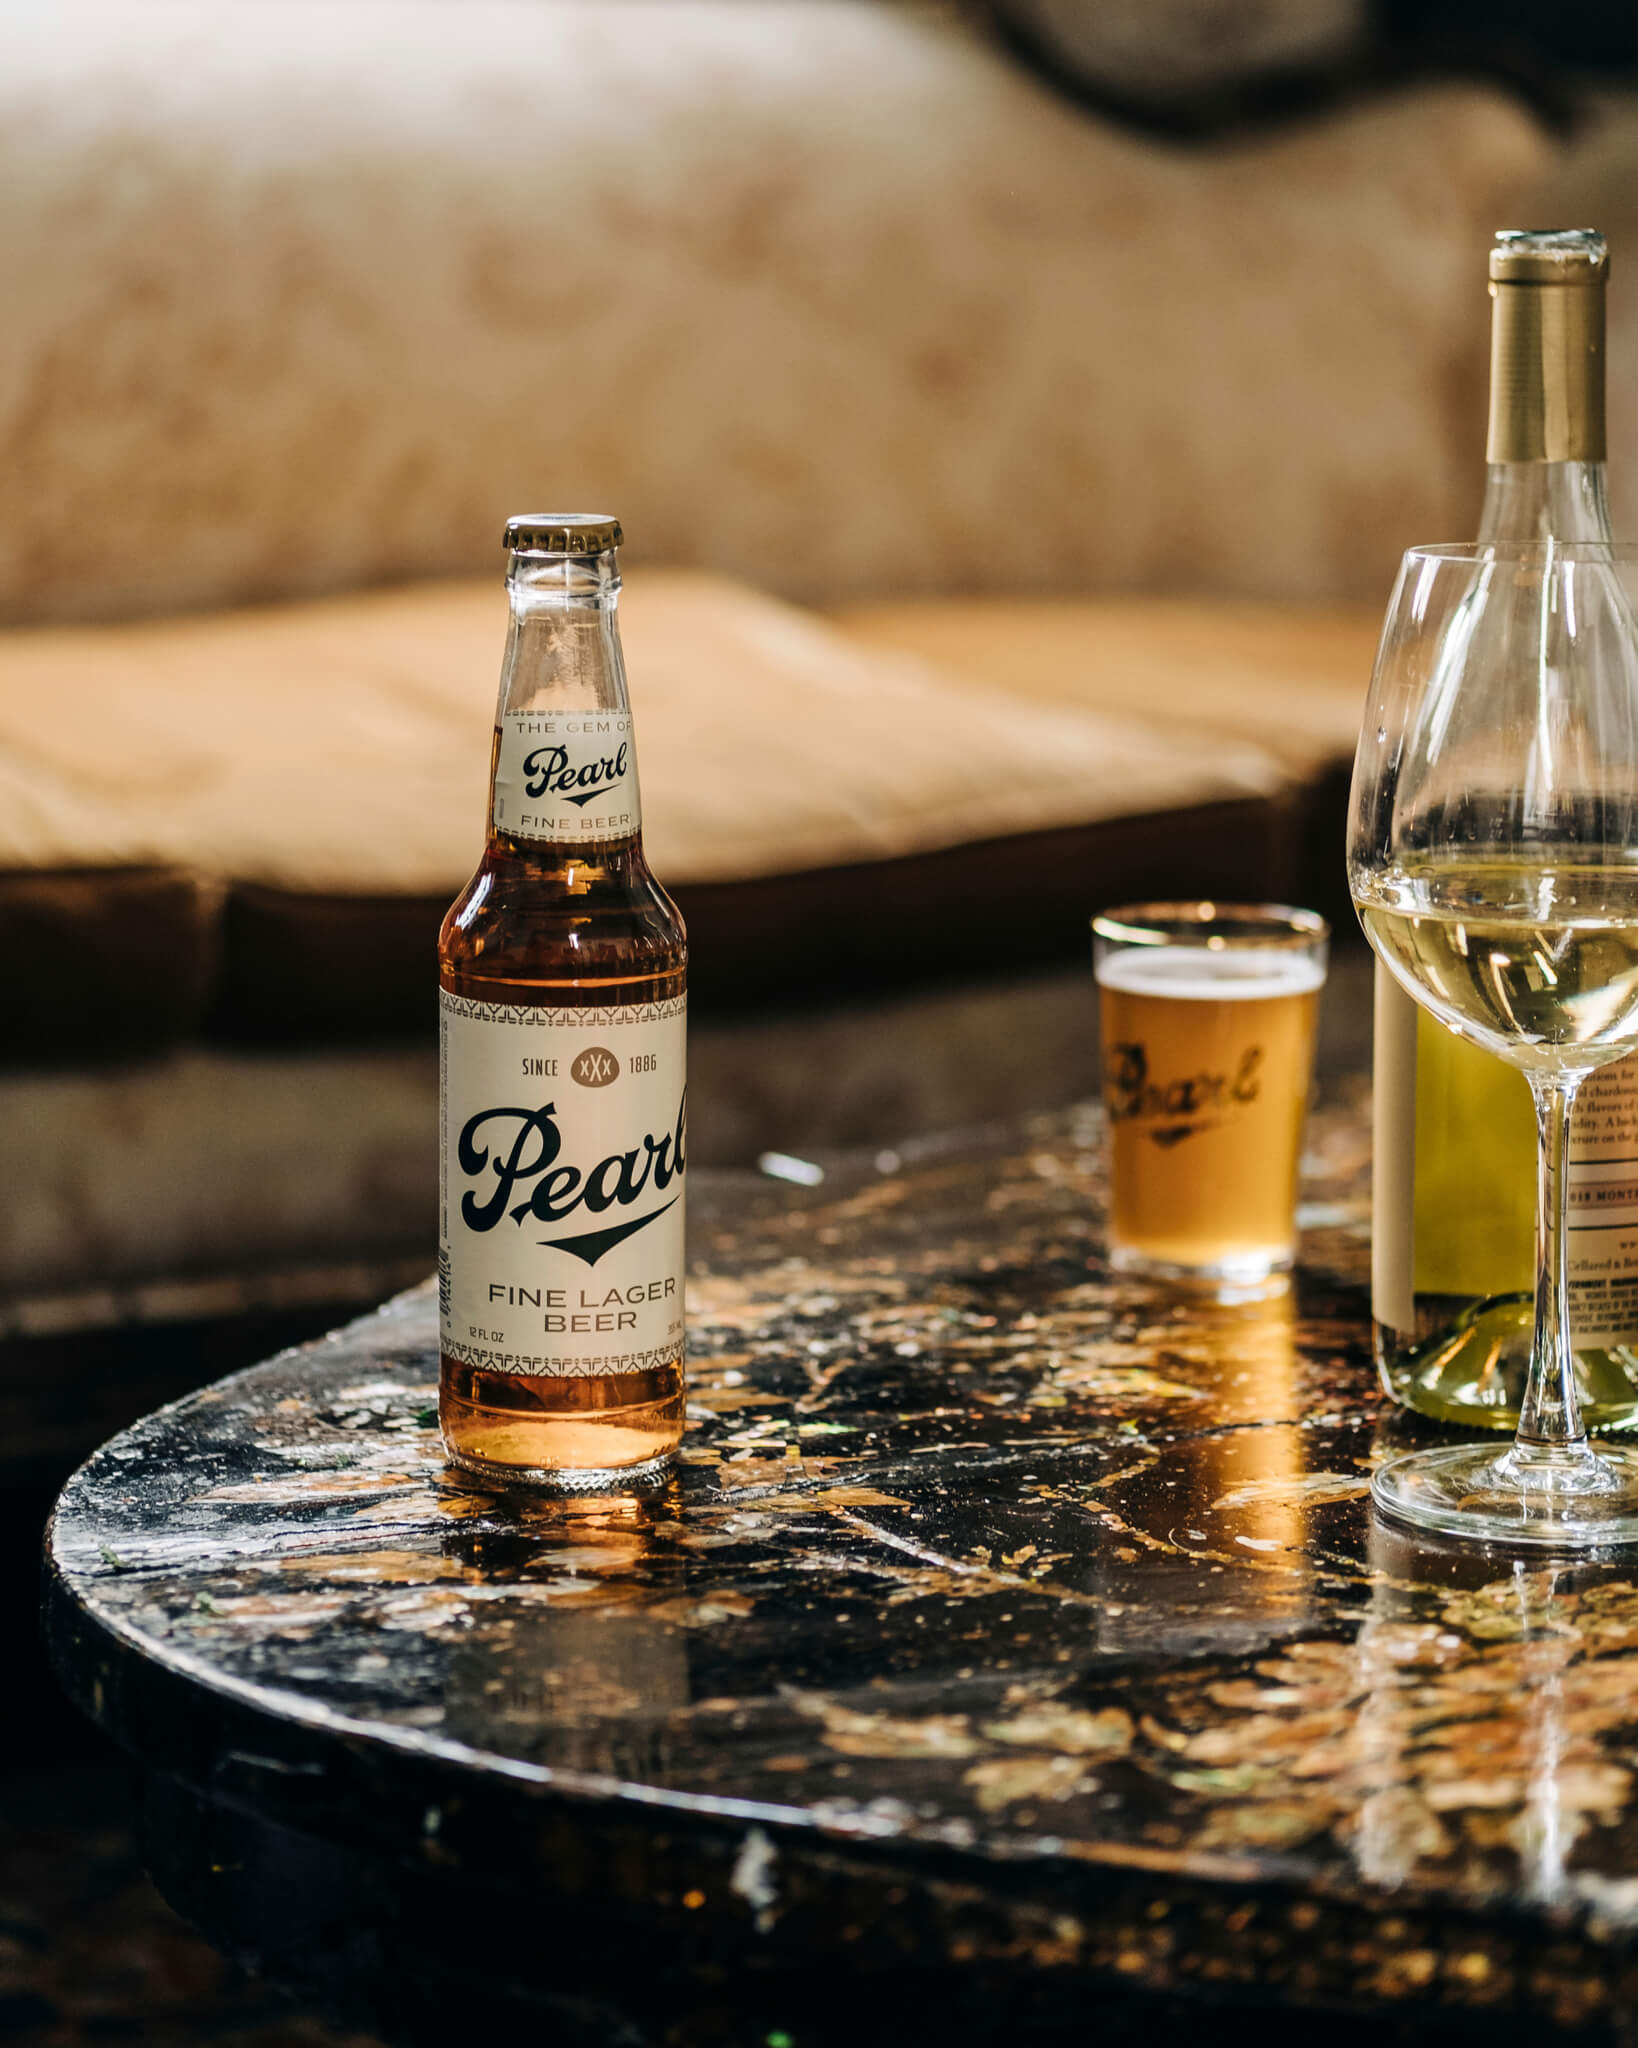 Pearl Brewing Company has relaunched Pearl xXx, the iconic Gem of Fine Beer, rooted in San Antonio's history and reimagined with a new look and taste.